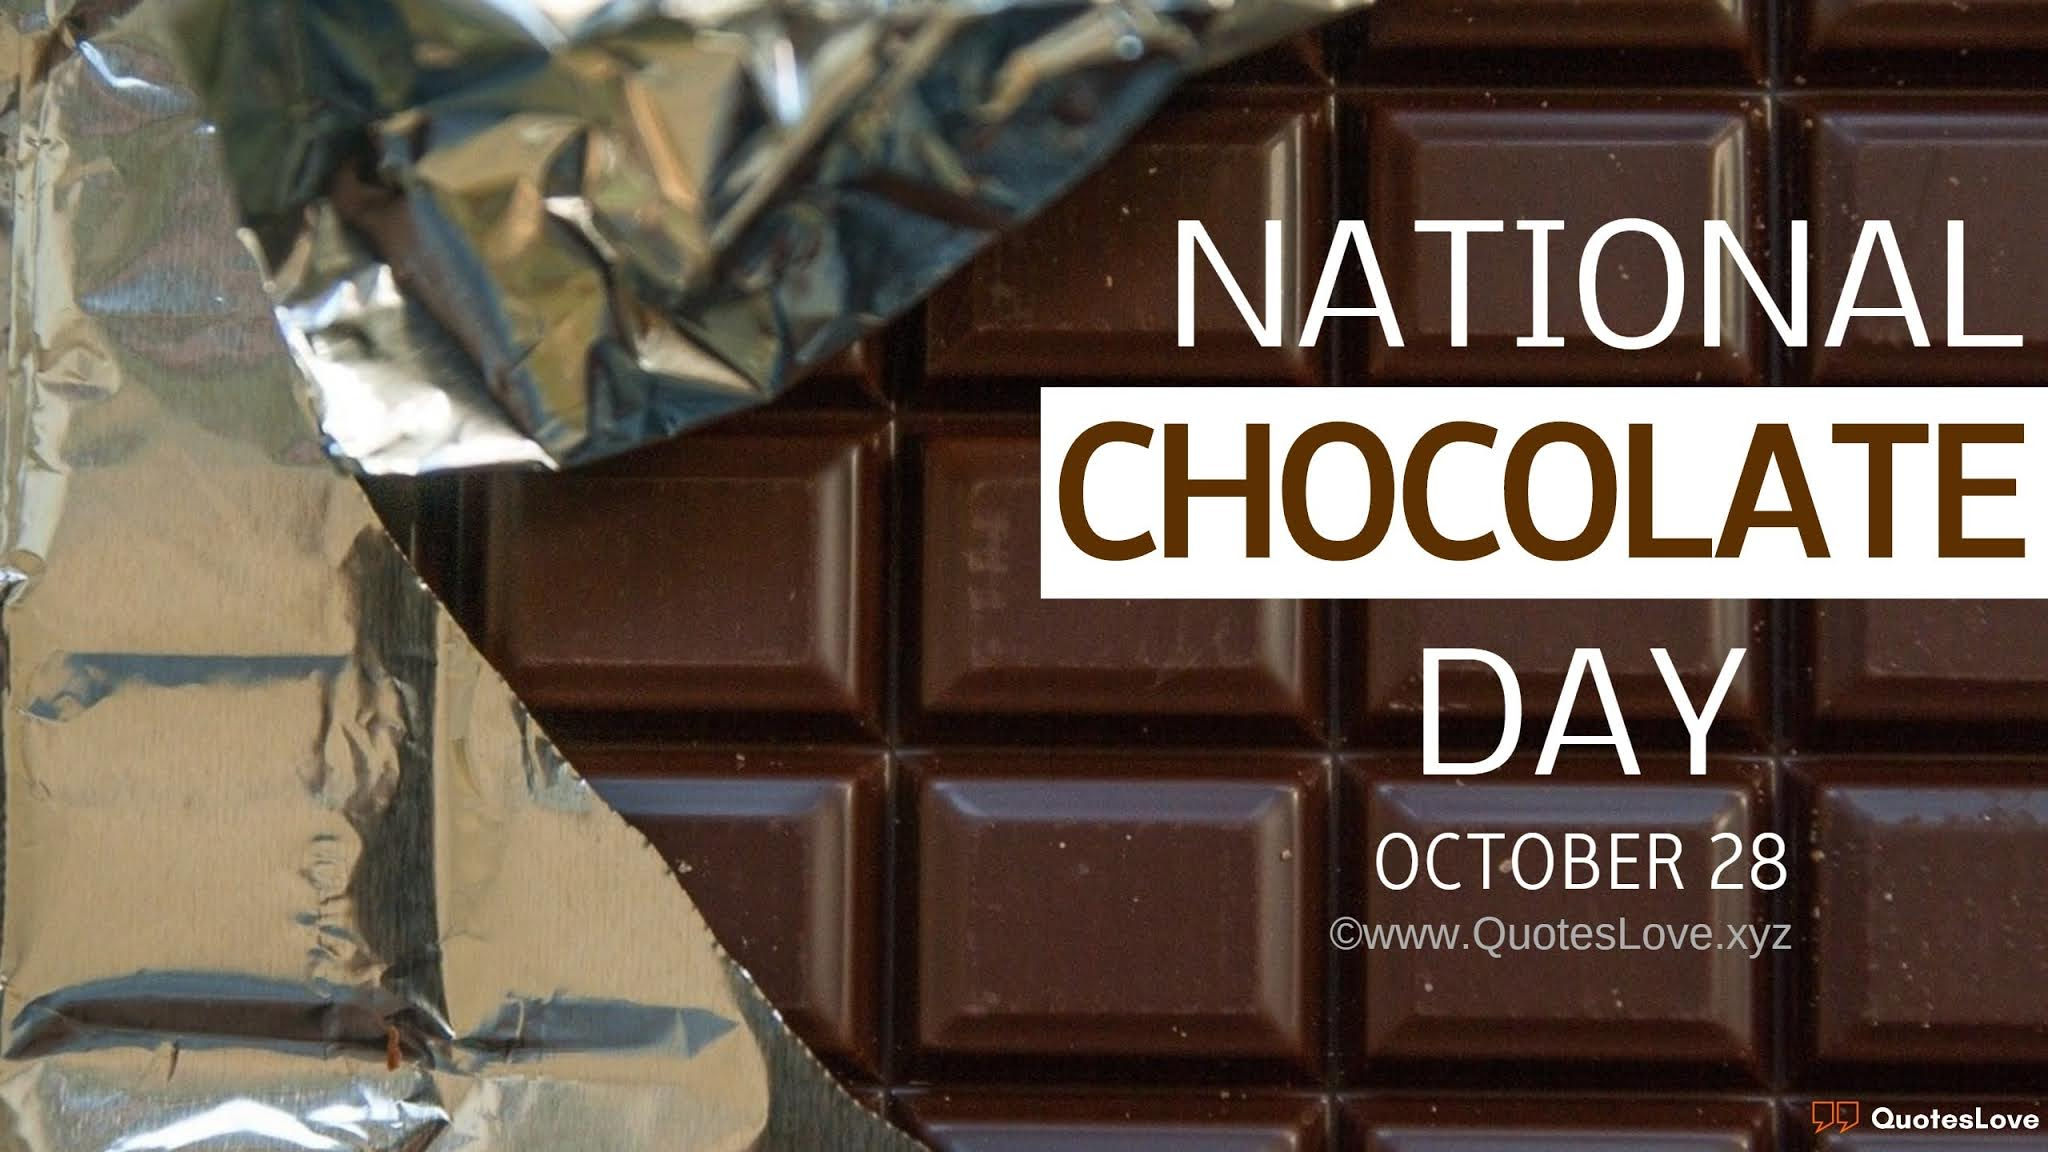 National Chocolate Day Quotes, Sayings, Wishes, Greetings, Messages, Images, Pictures, Photos, Poster